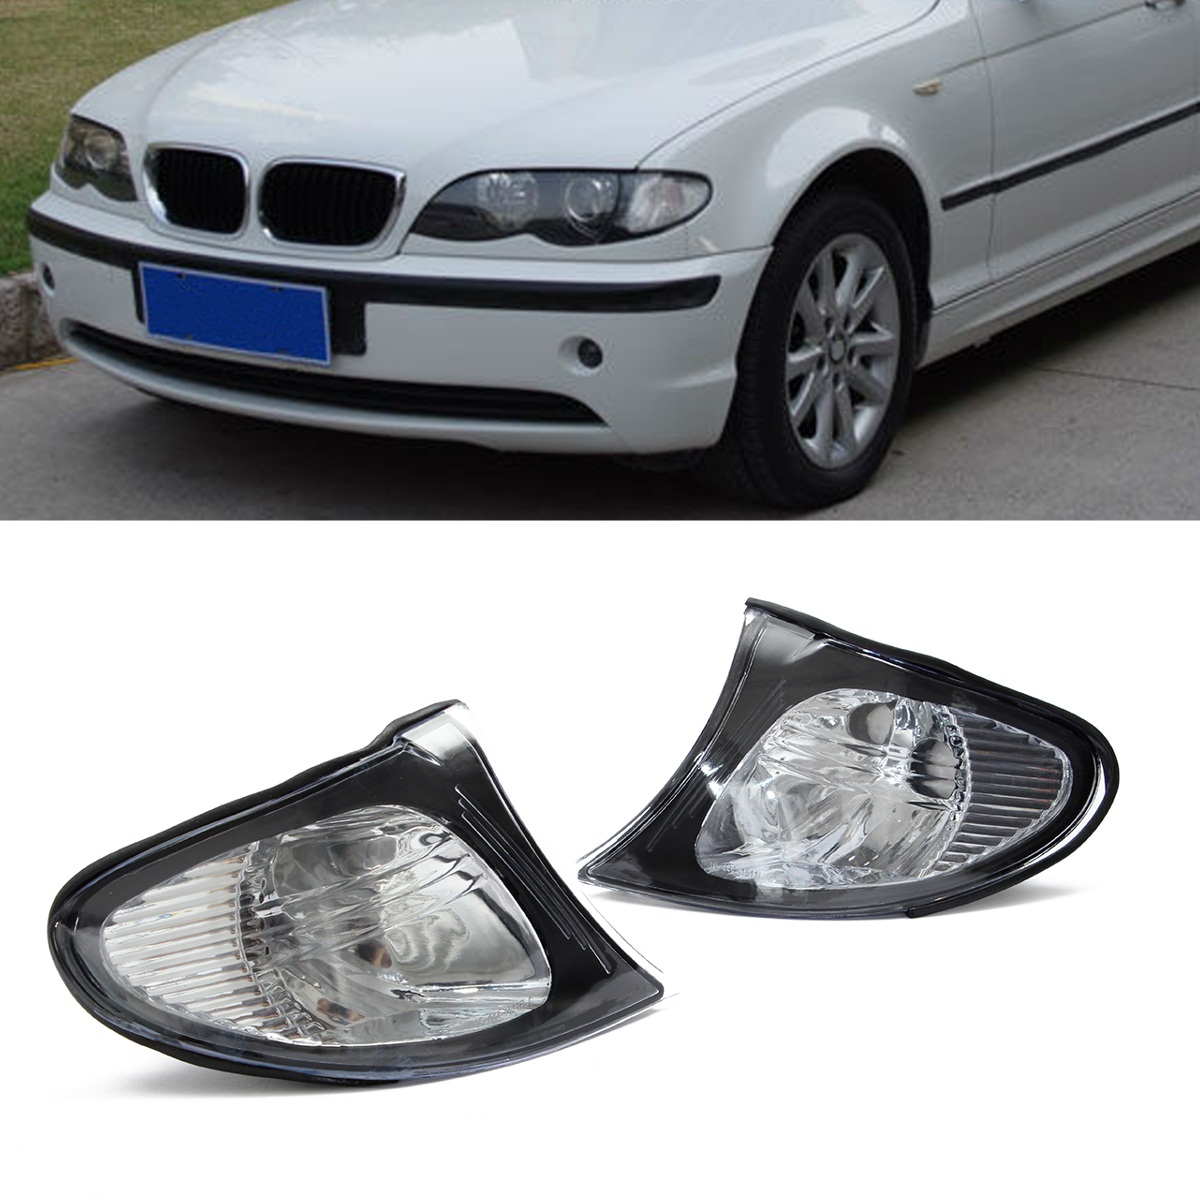 Pair Brand New Car Corner Lights Sidelights Lens Clear Left&Right For BMW E46 3-Series 325i 325xi 330i 330xi 4DR 2002-2005 автокресло cybex sirona plus midnight blue page 9